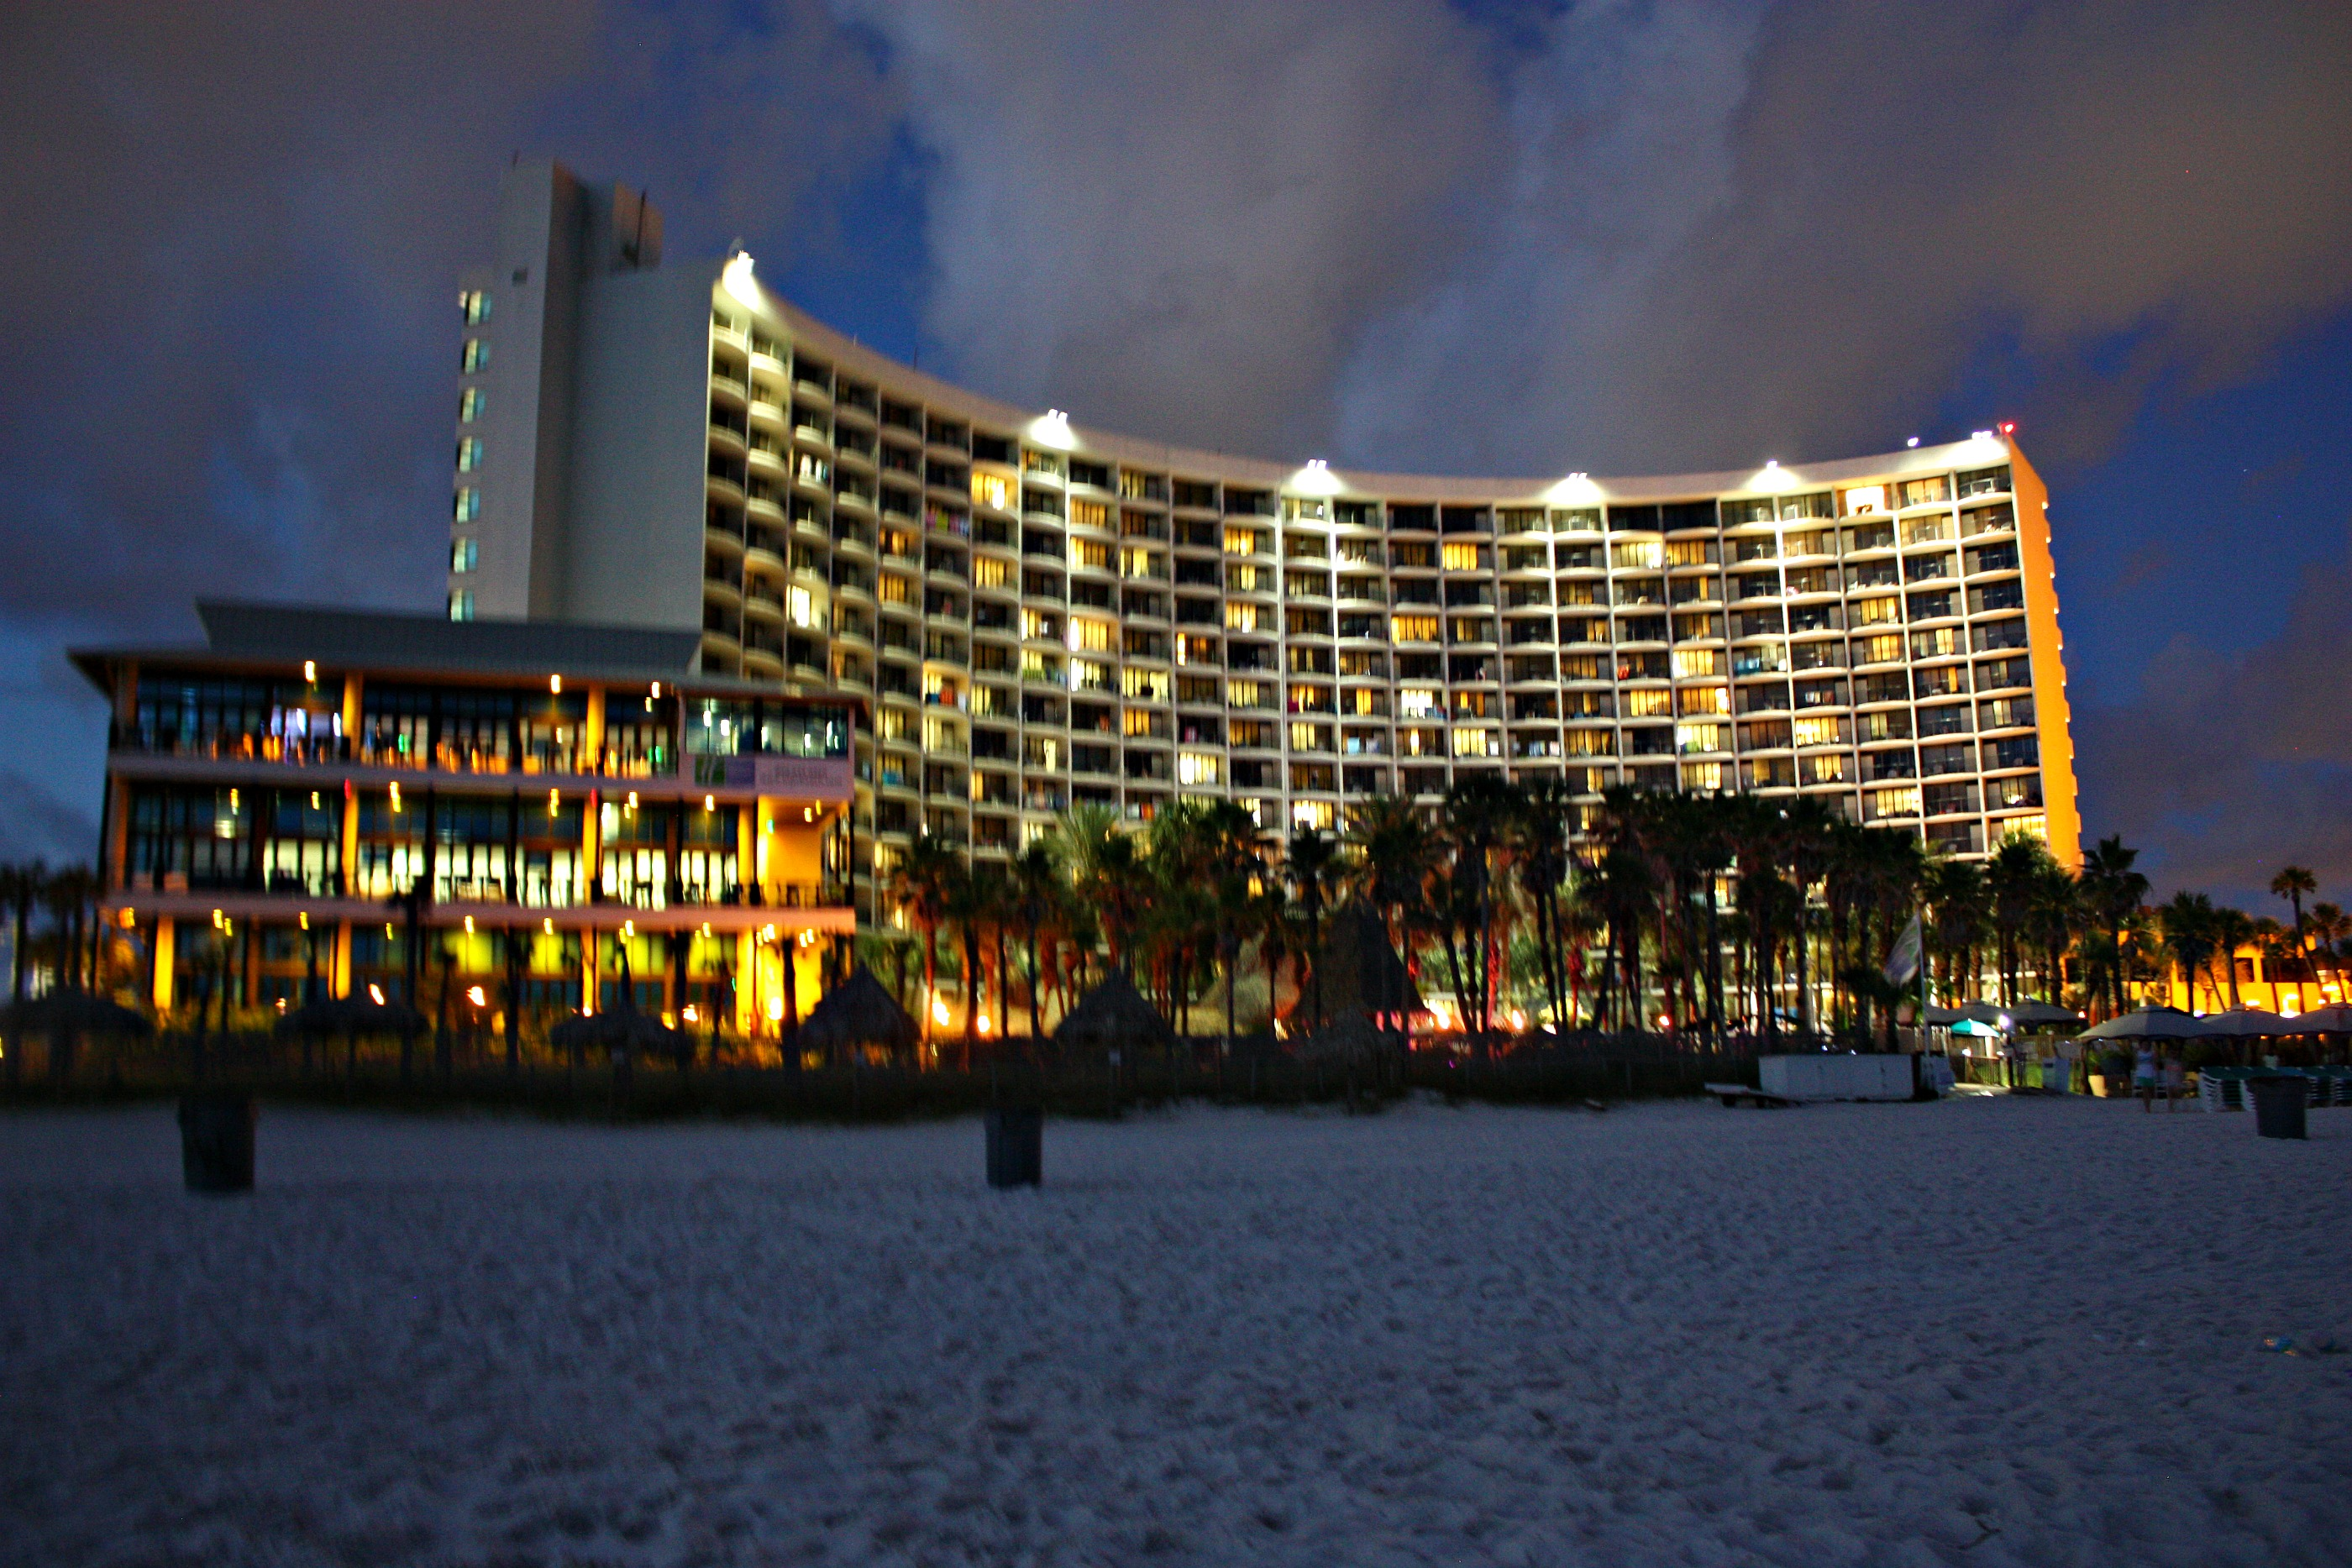 Night View of the Holiday Inn Resort in PCB